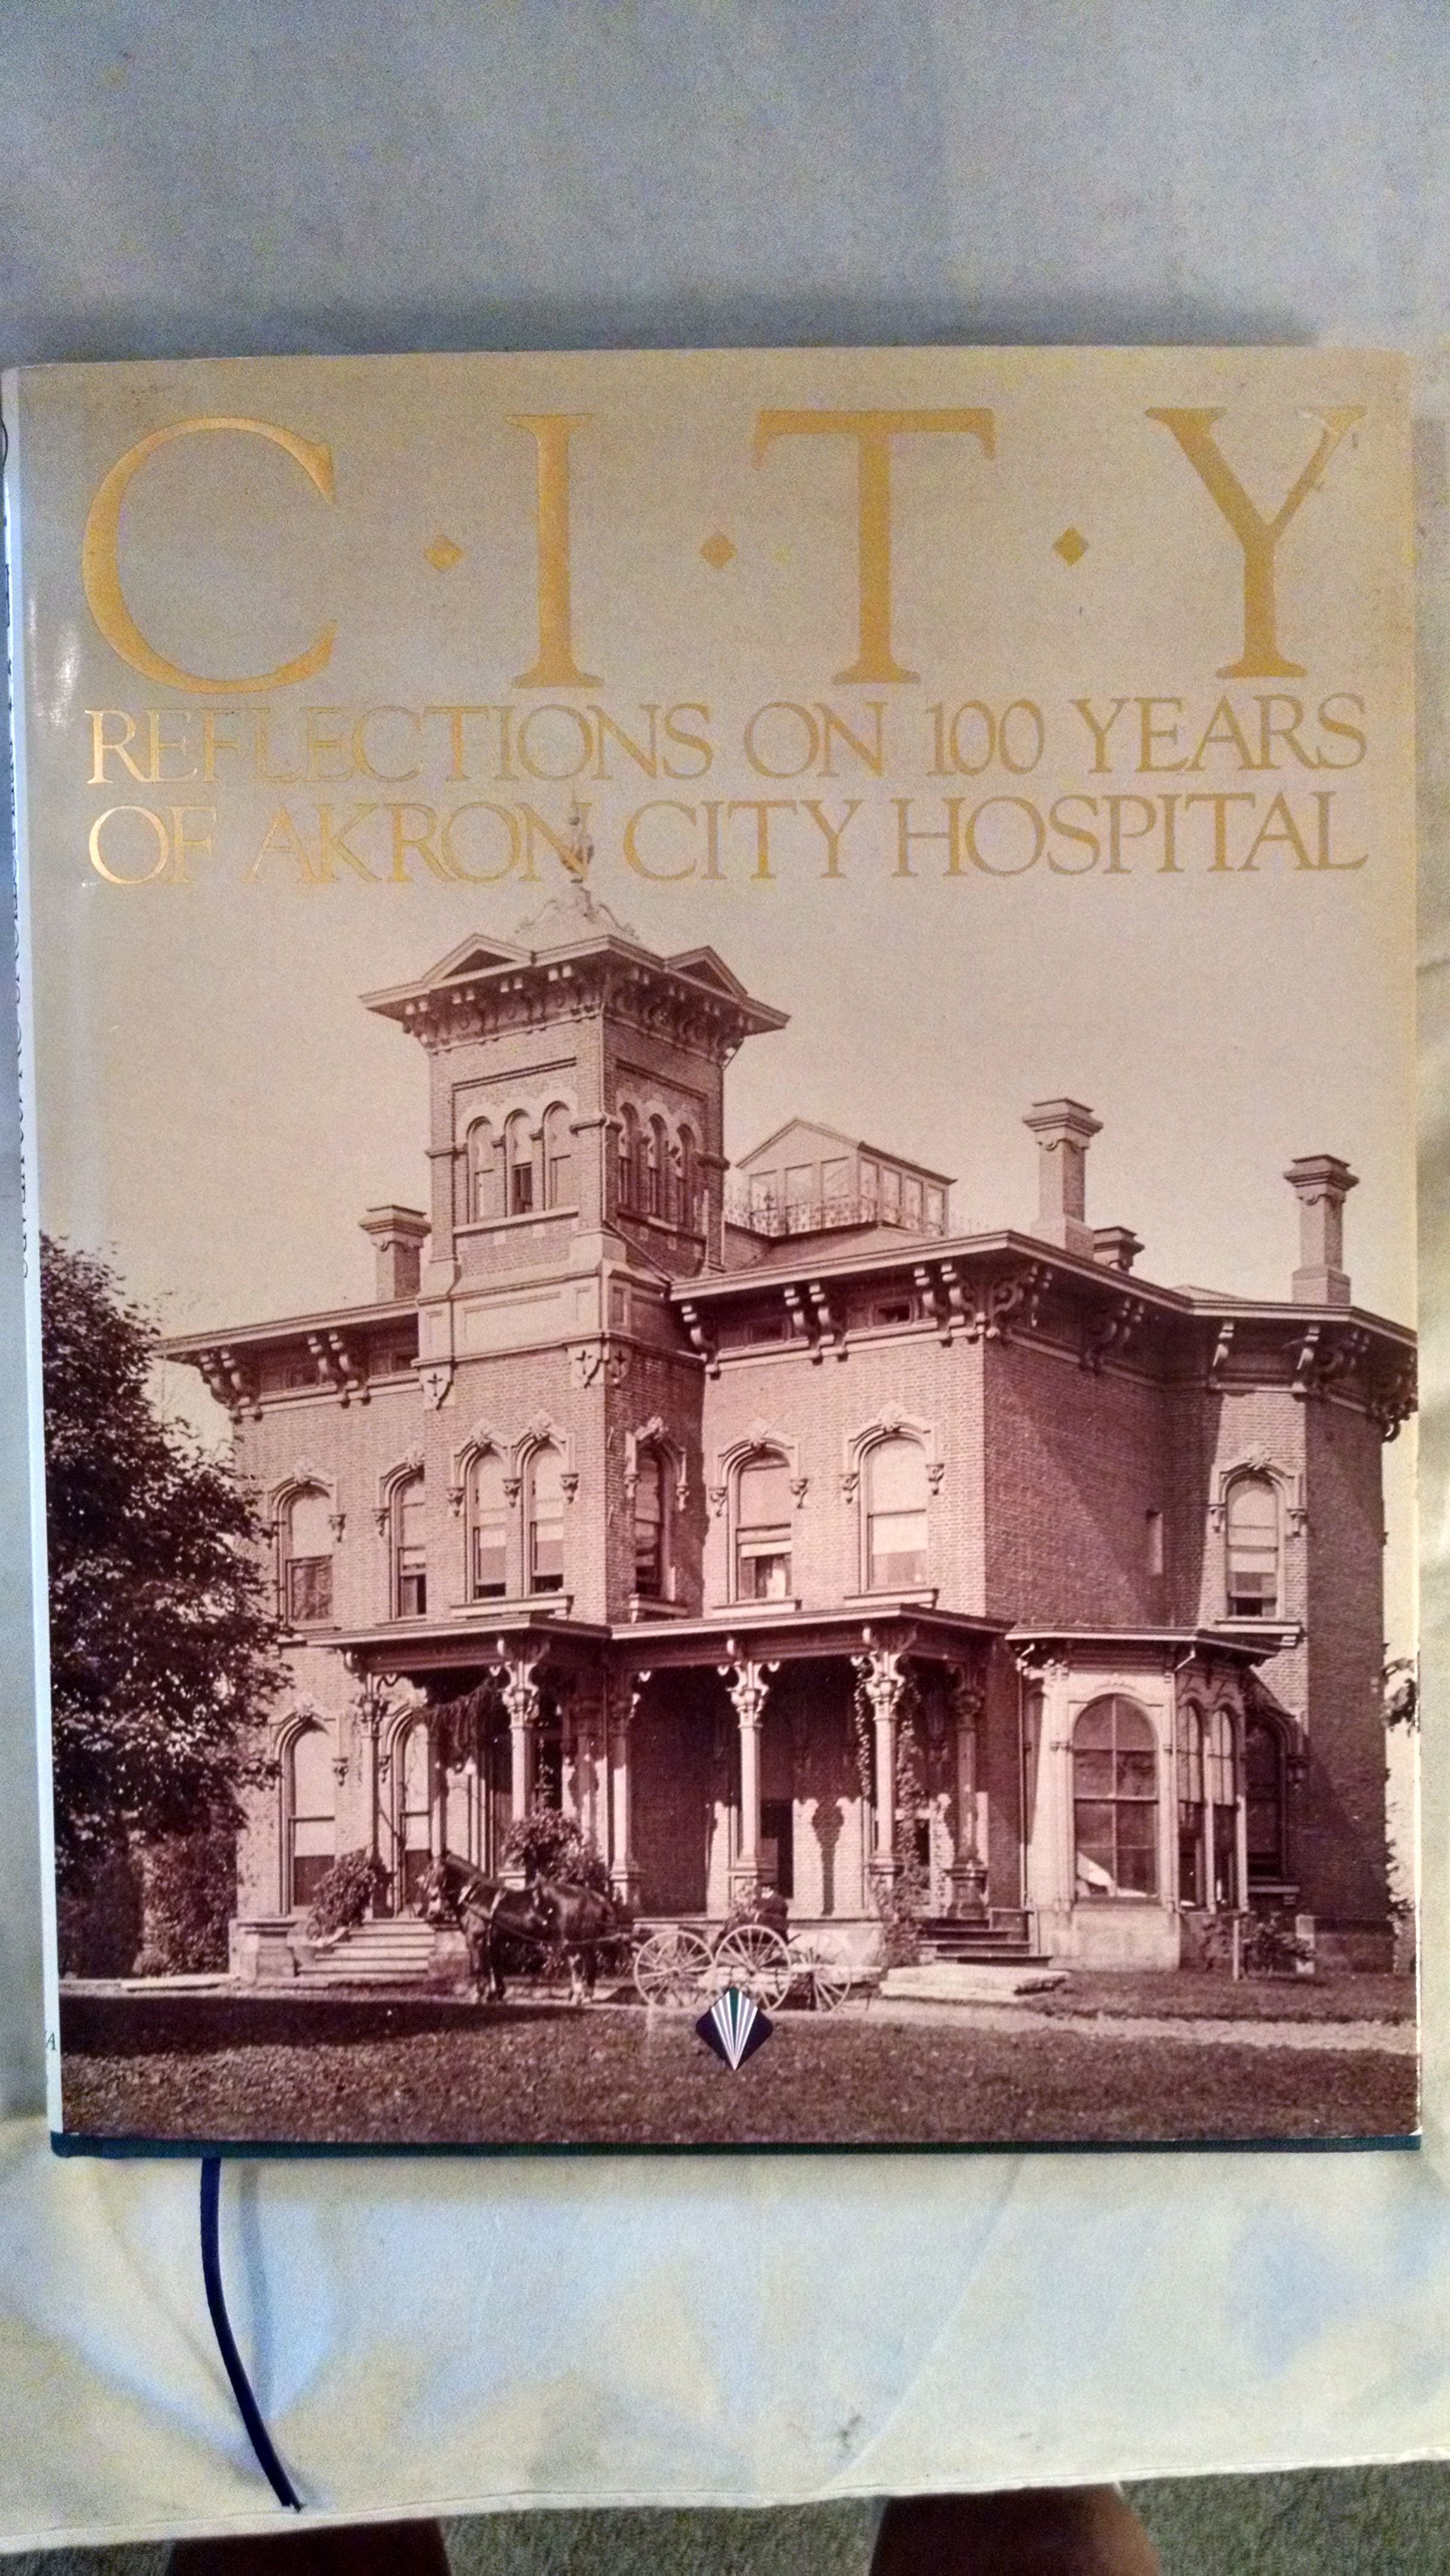 Image for CITY  REFLECTIONS ON 100 YEARS OF AKRON CITY HOSPITAL